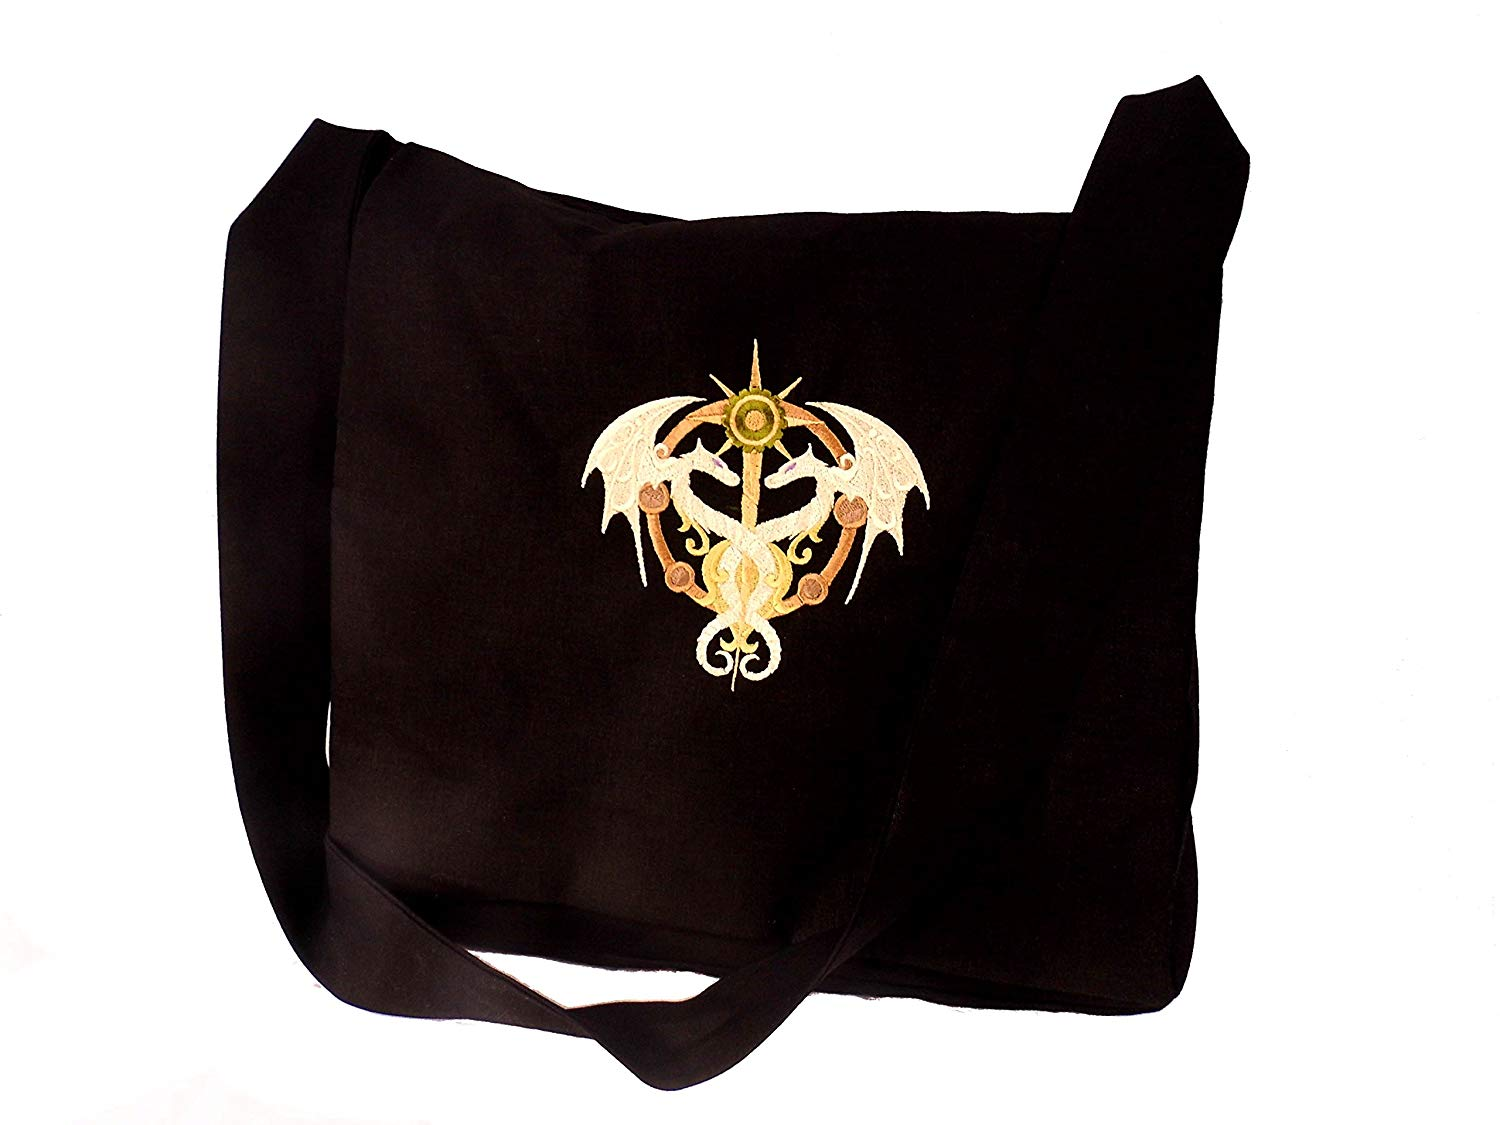 65e7fc50d917 Cheap Symbol Bag, find Symbol Bag deals on line at Alibaba.com